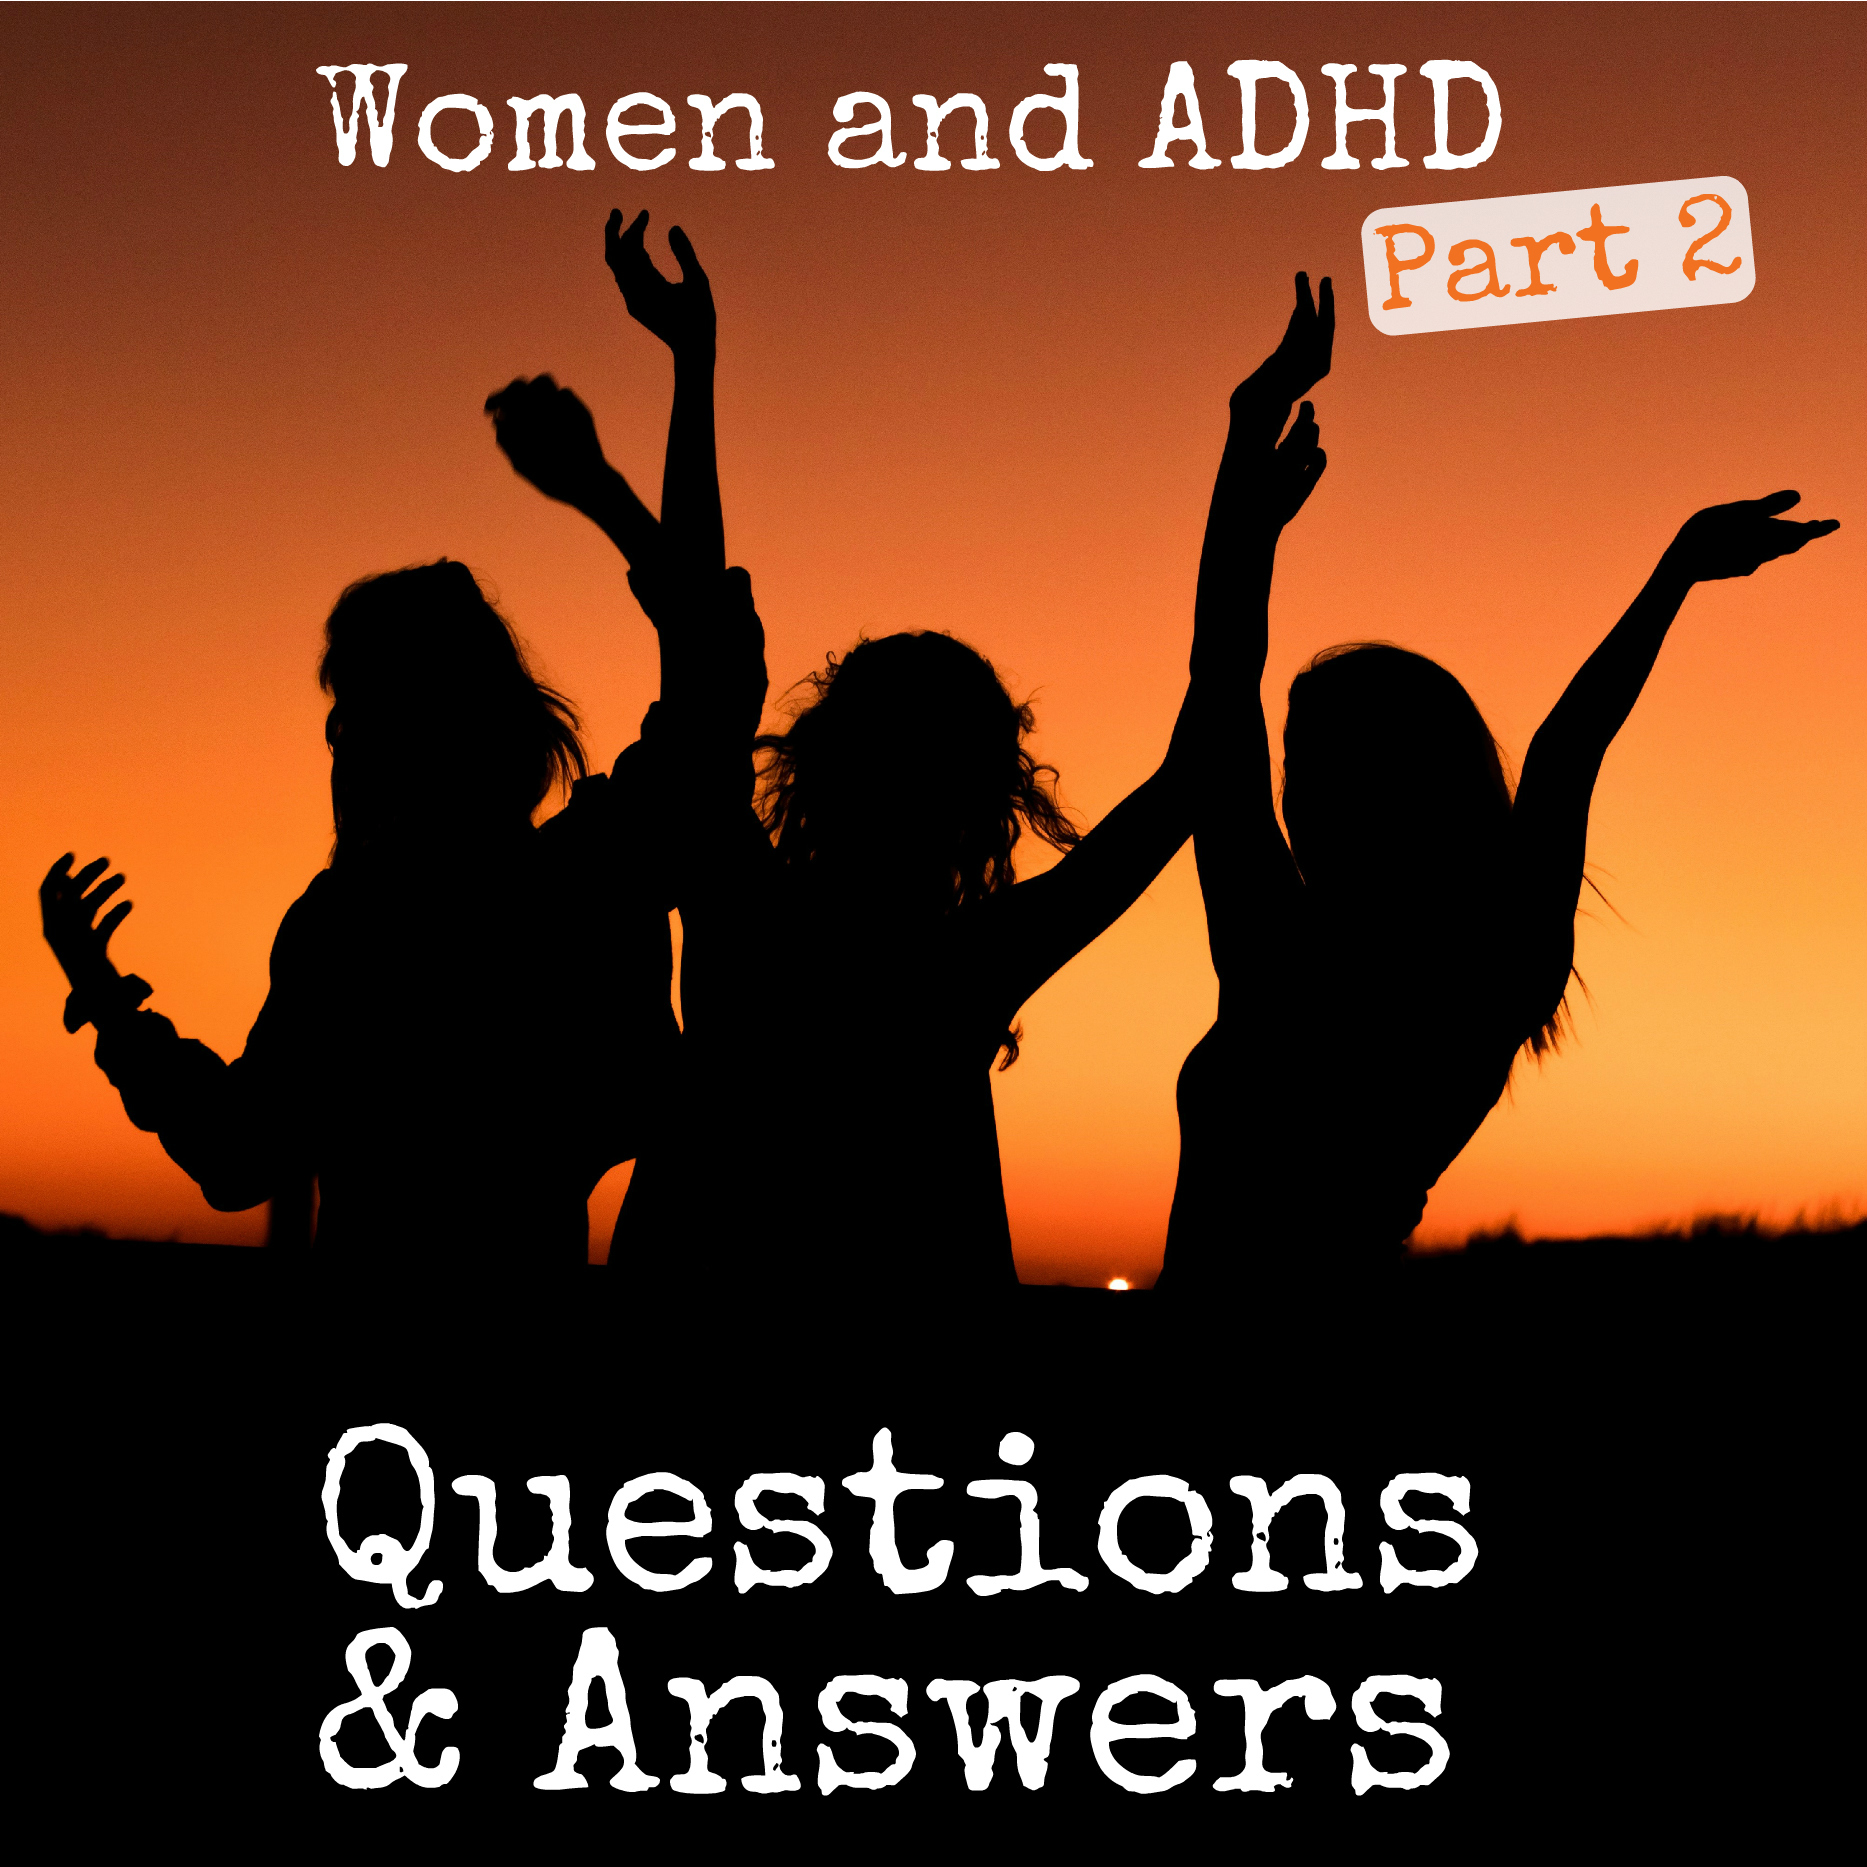 S2 Ep 40: Women and ADHD Q&A Part 2